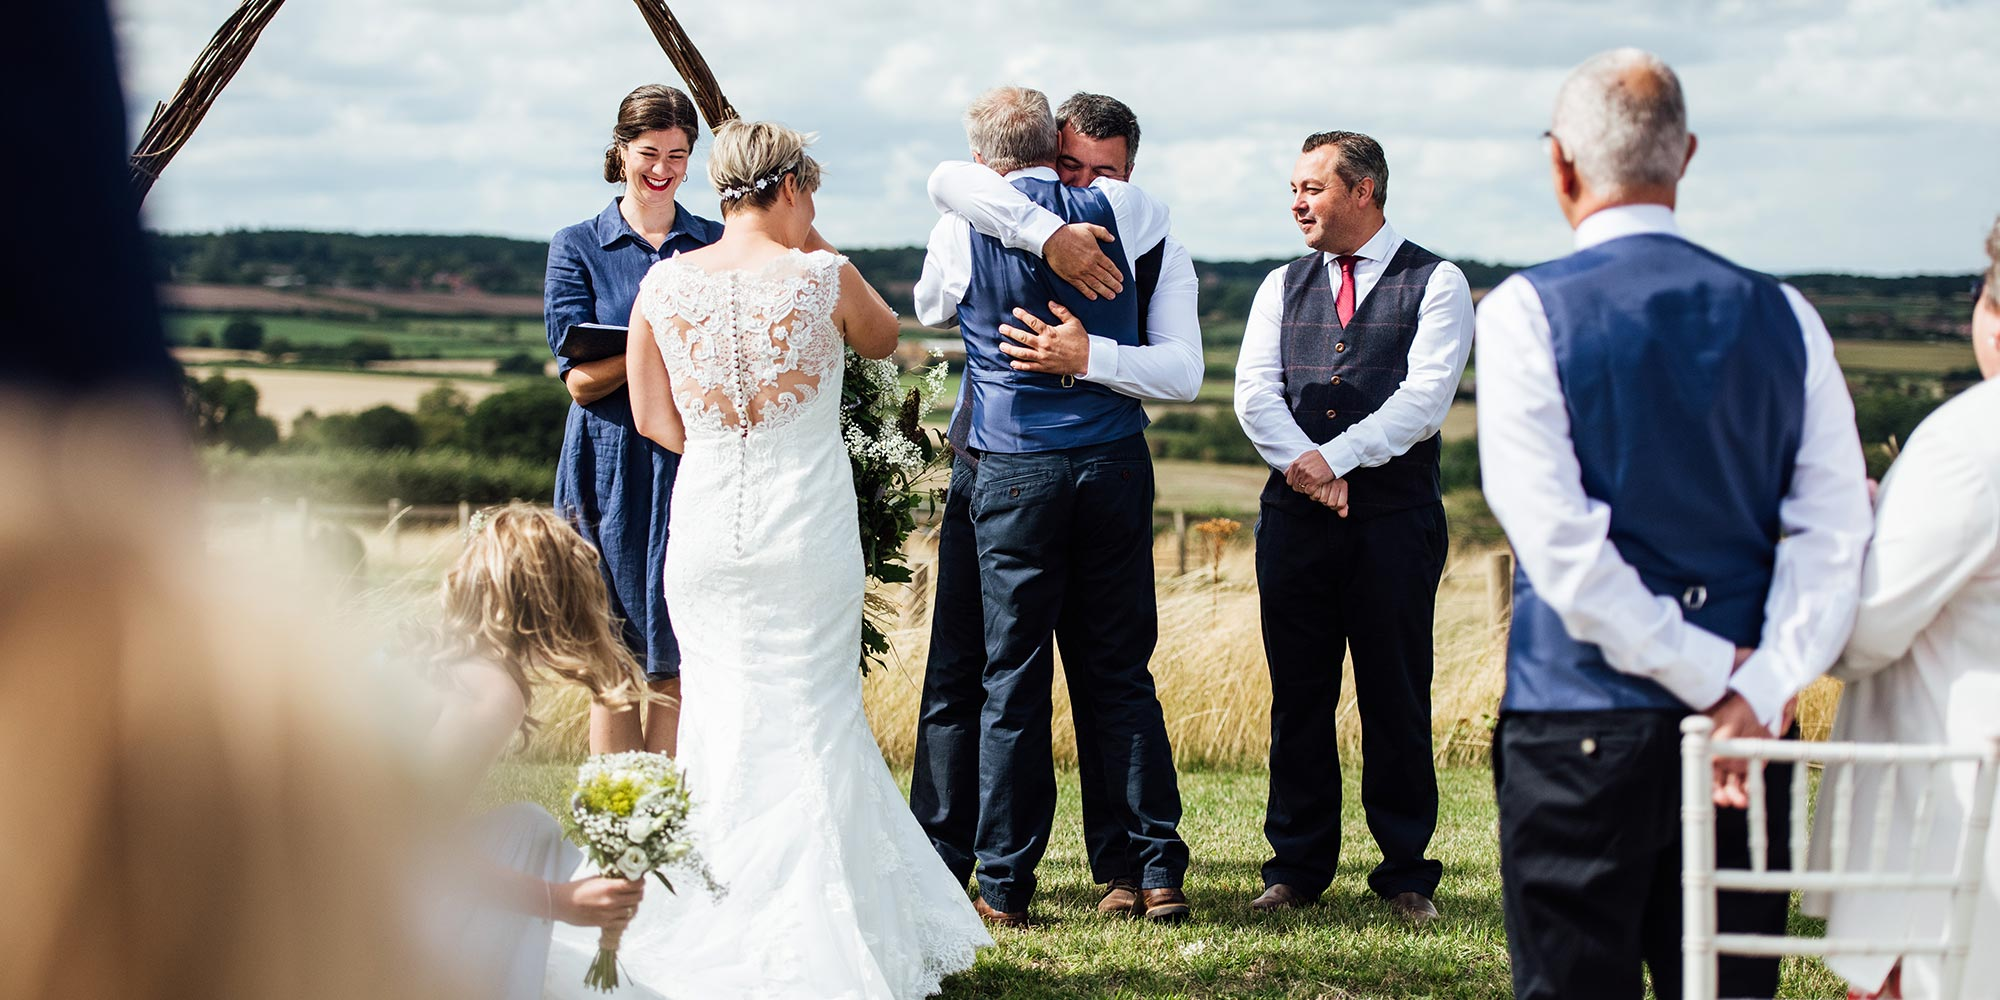 Happy moment during wedding ceremony | Humanist Wedding Celebrant Laura Gimson